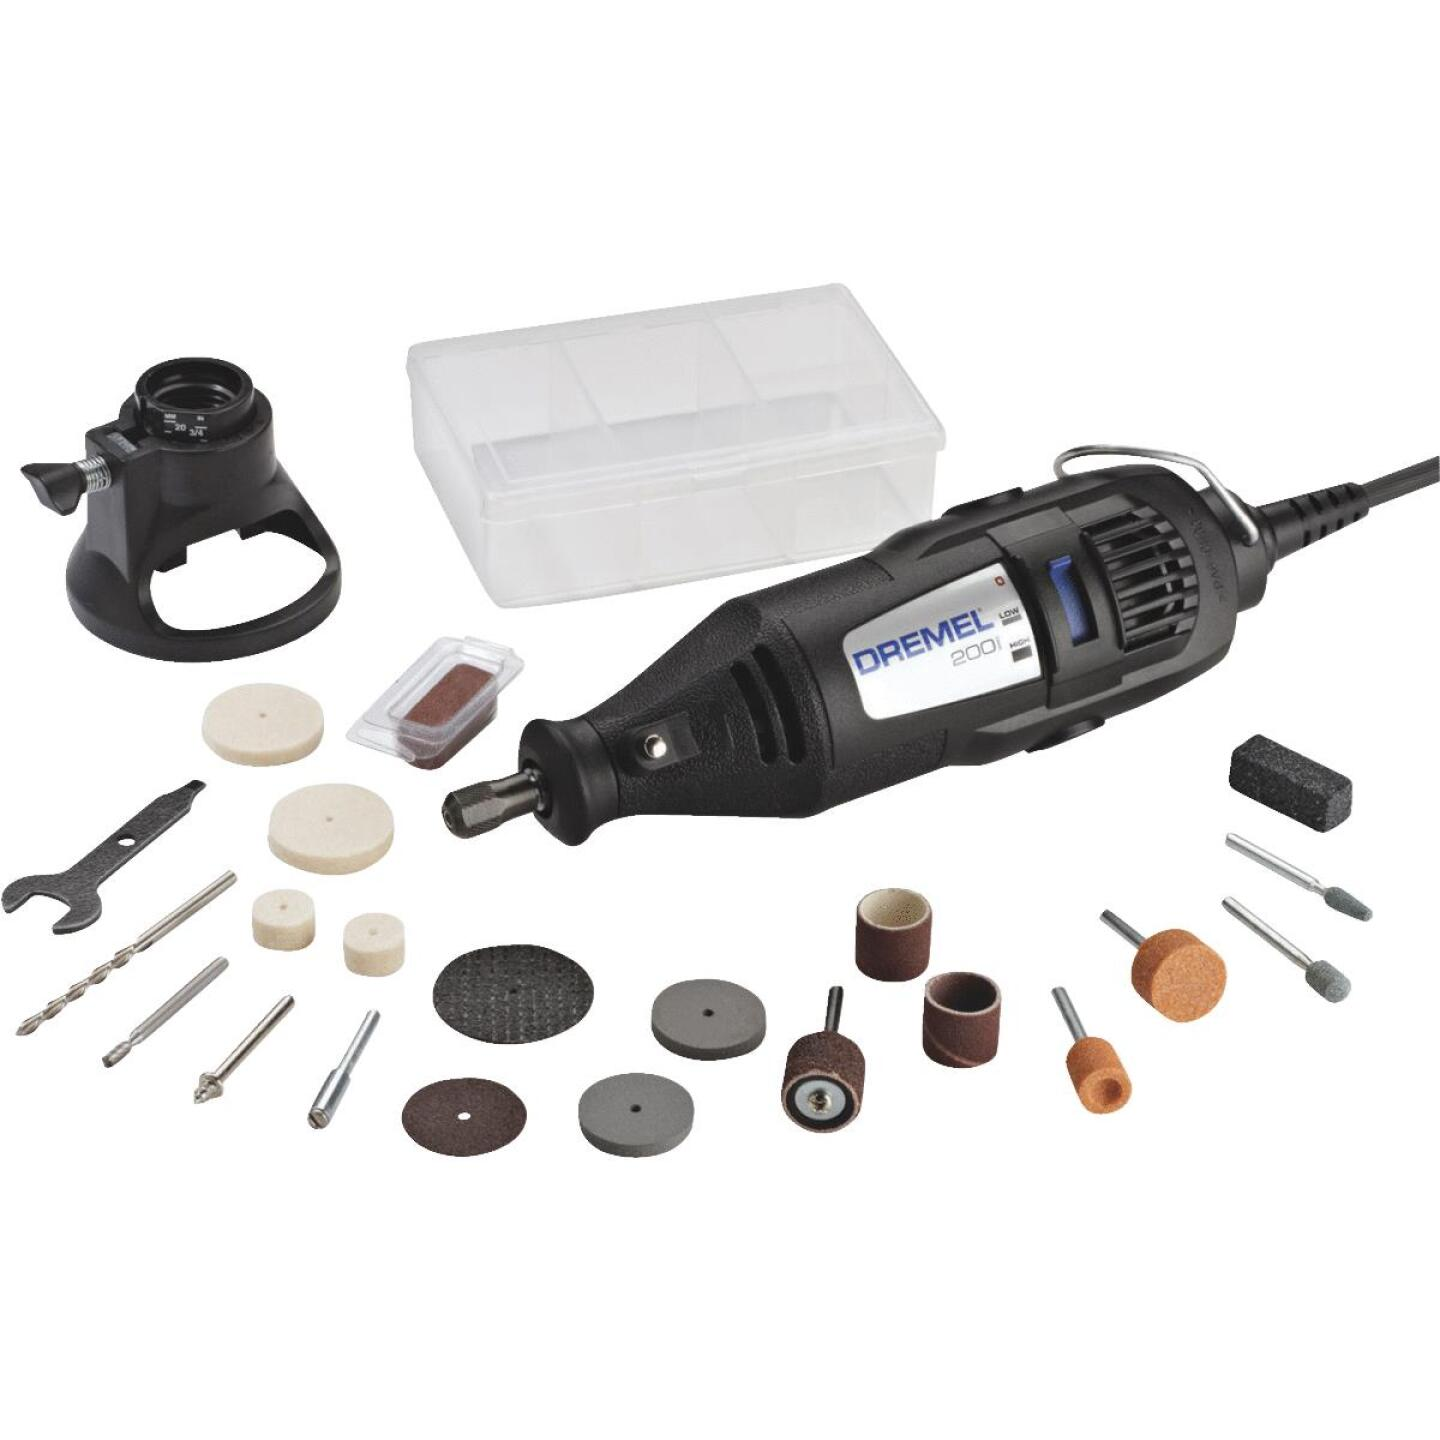 Dremel 120-Volt 1.15-Amp 2-Speed Electric Rotary Tool Kit Image 1